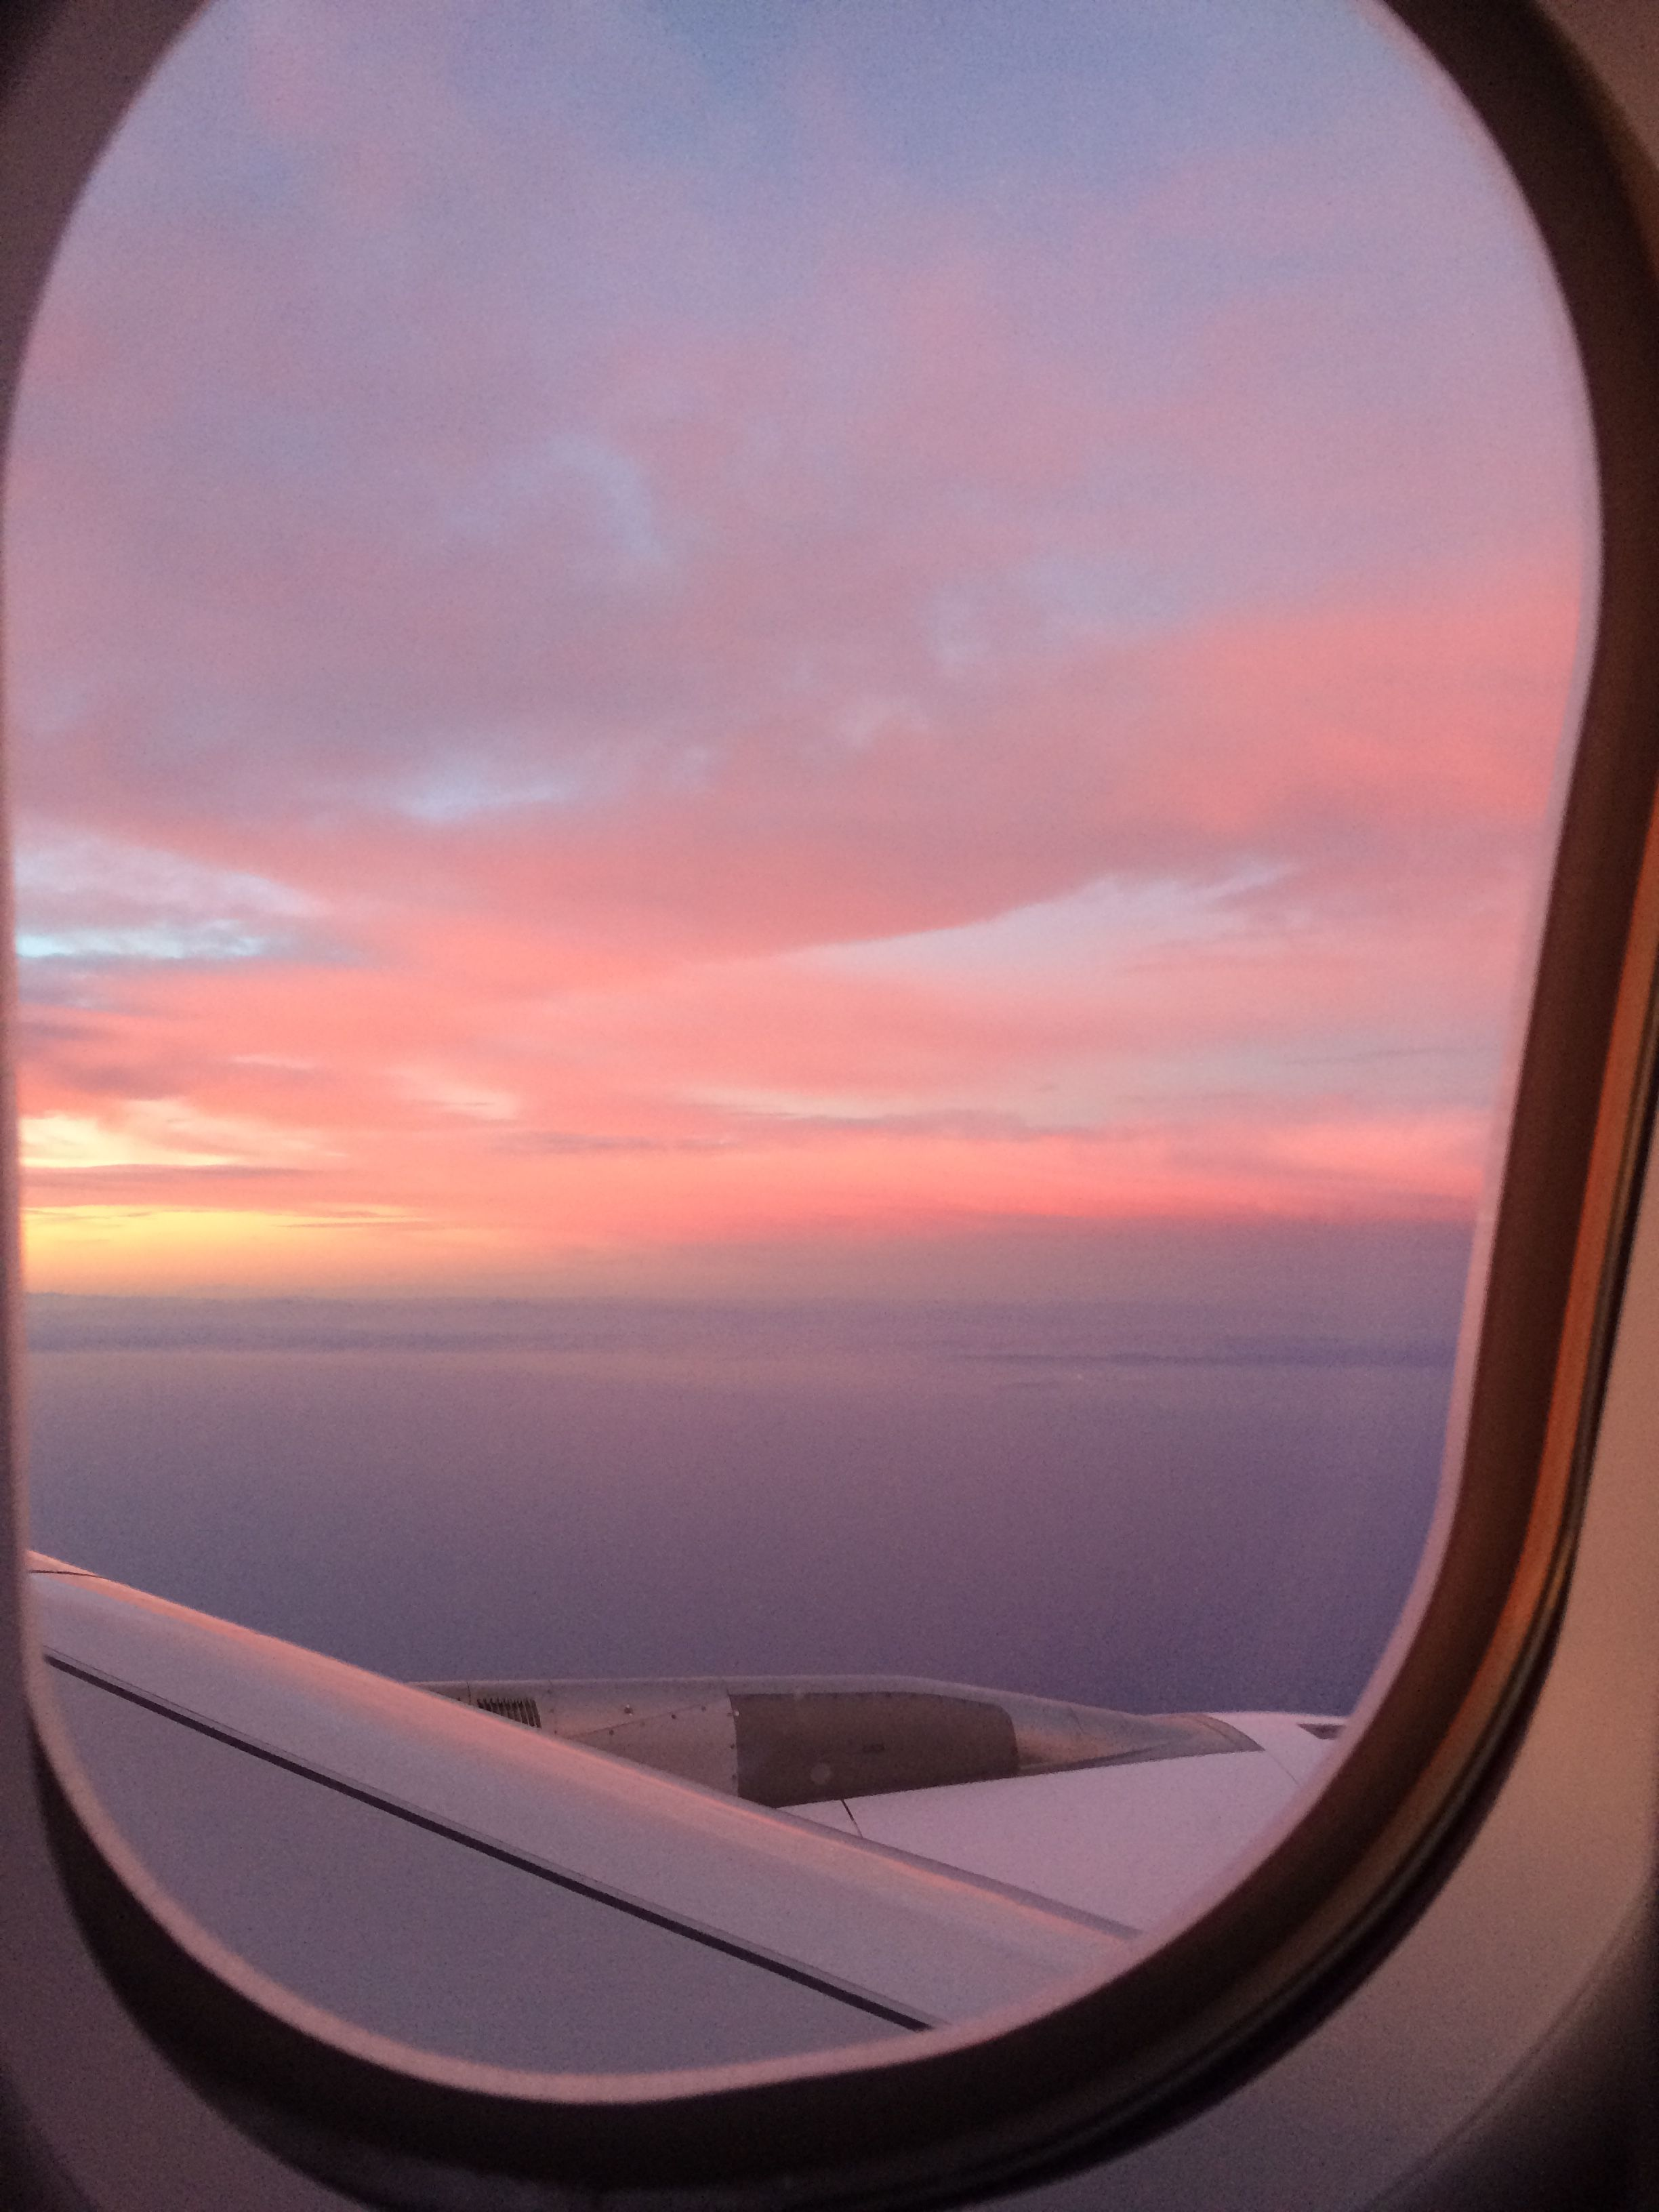 Airplane Aesthetic Wallpapers Top Free Airplane Aesthetic